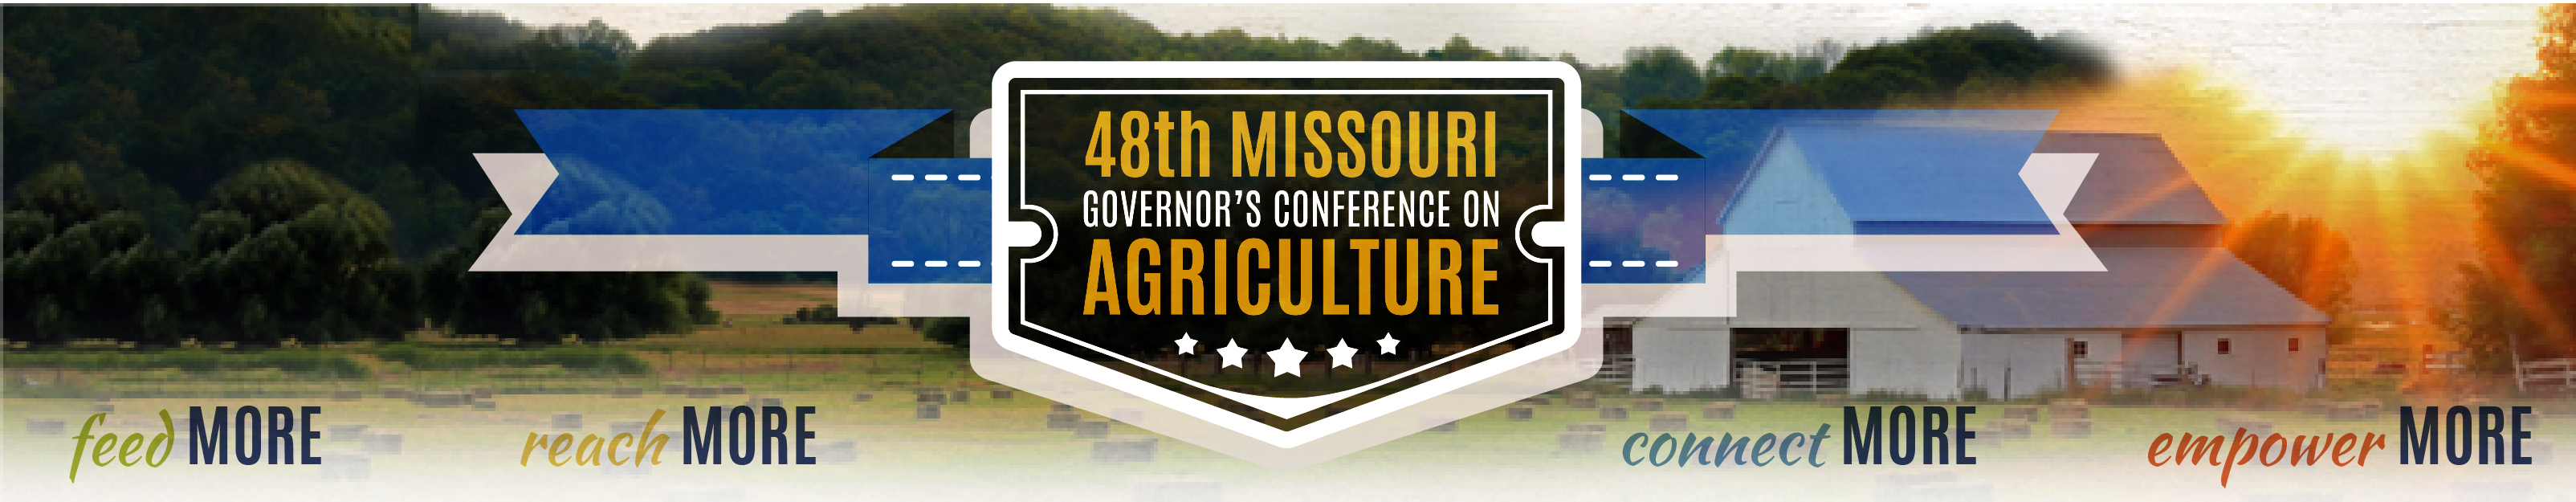 2019 Governor's Conference on Agriculture